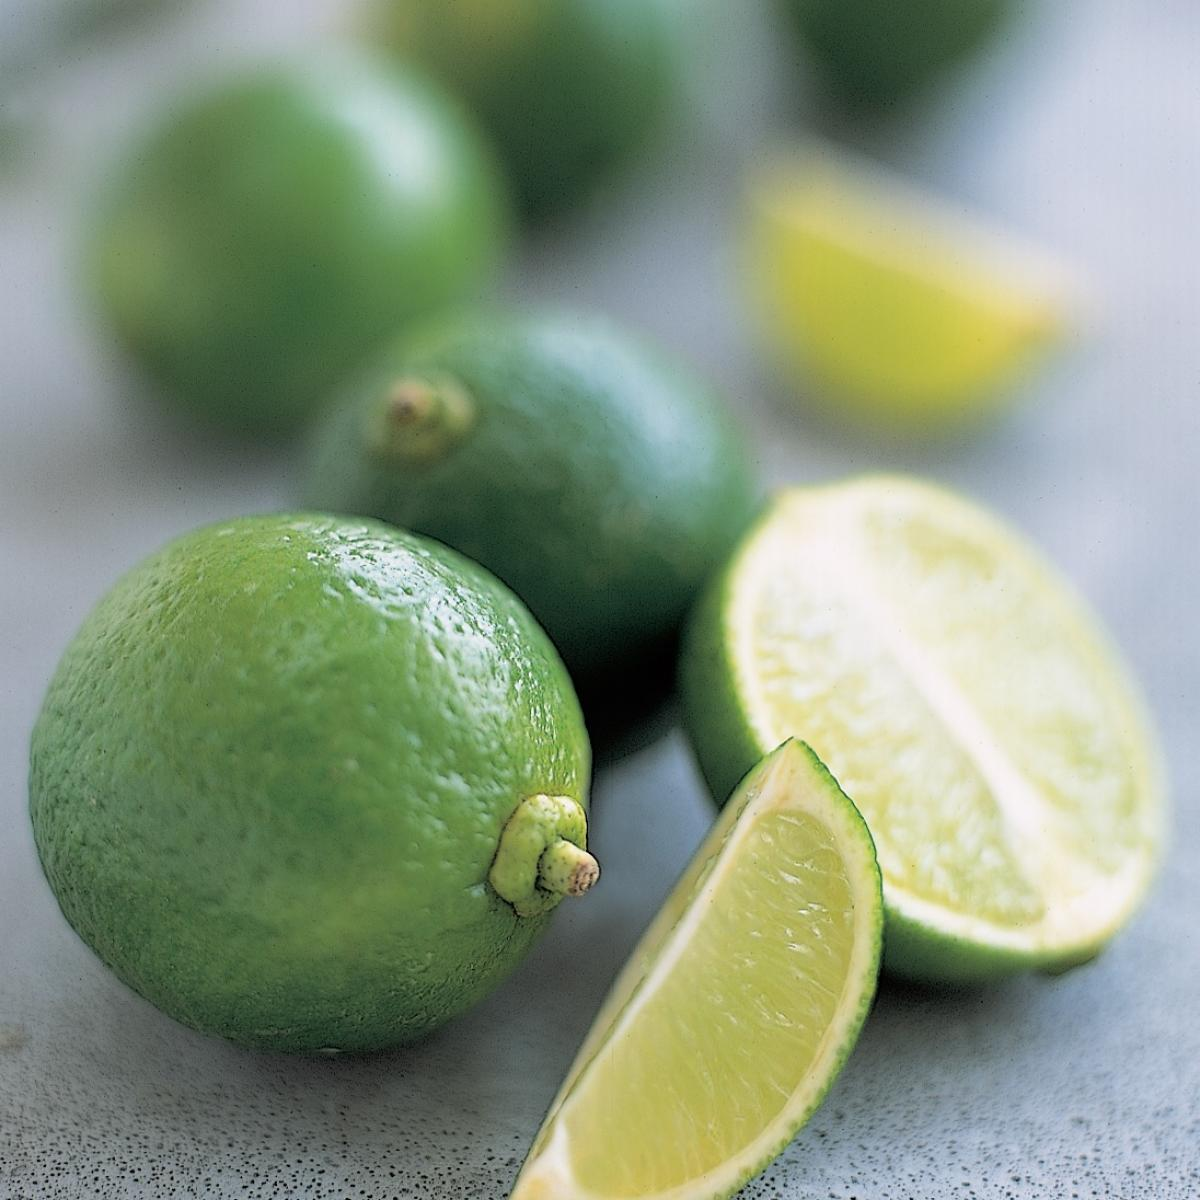 A picture of Delia's Pickled Limes recipe